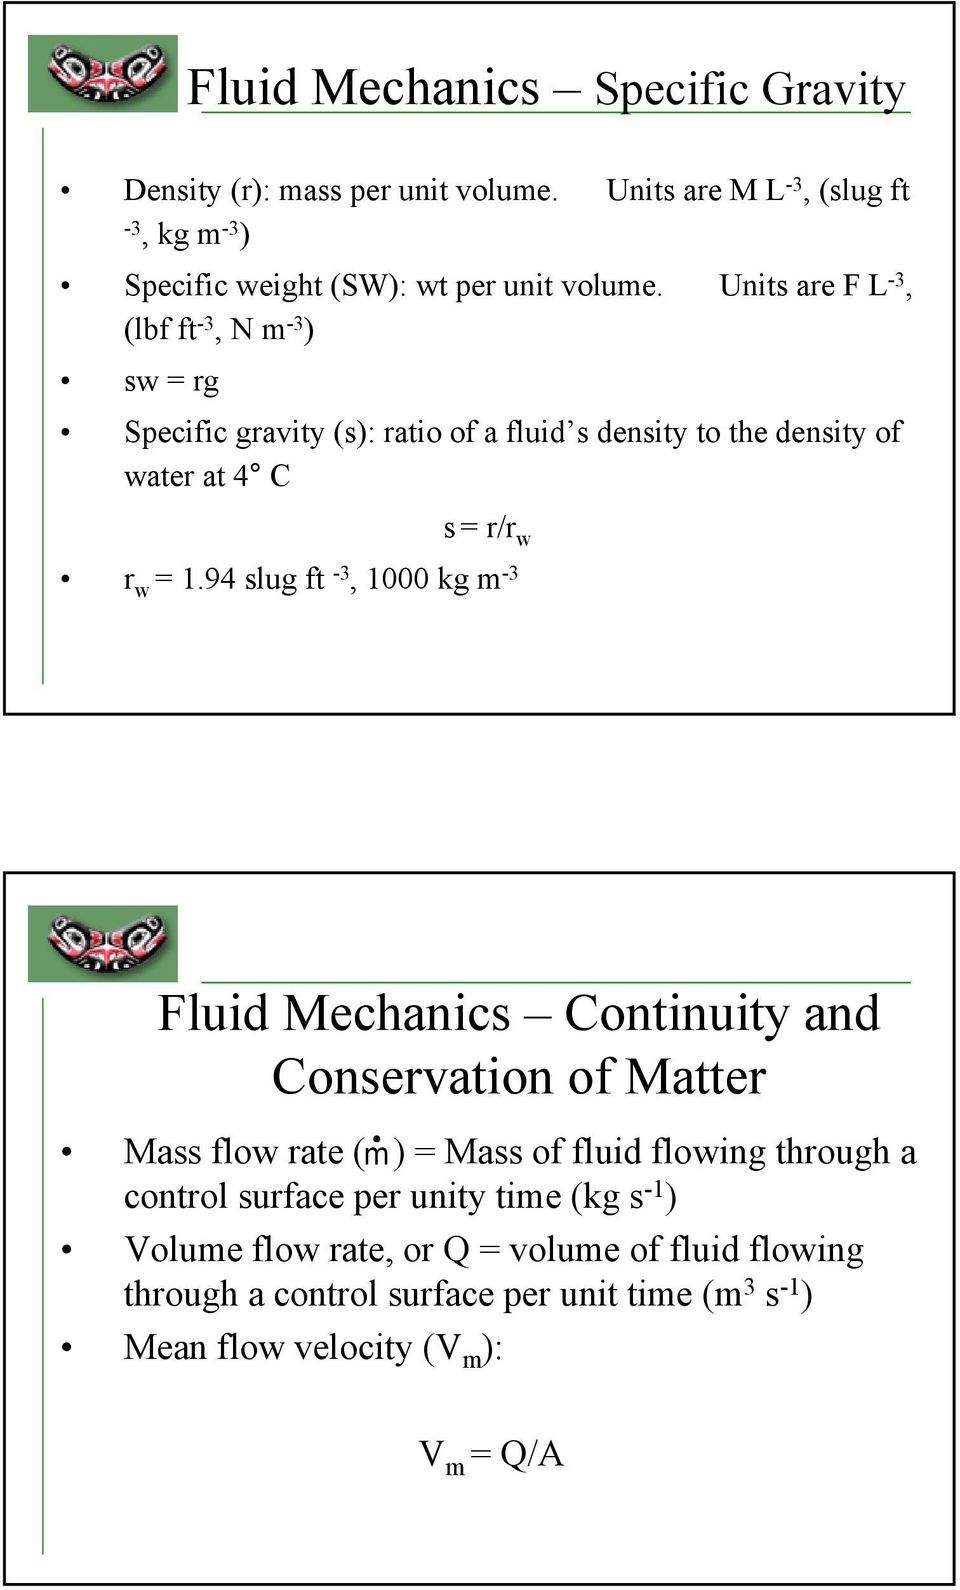 94 slug ft -3, 000 kg m -3 Fluid Mechanics Continuity and Conservation of Matter Mass flow rate ( ṁ) = Mass of fluid flowing through a control surface